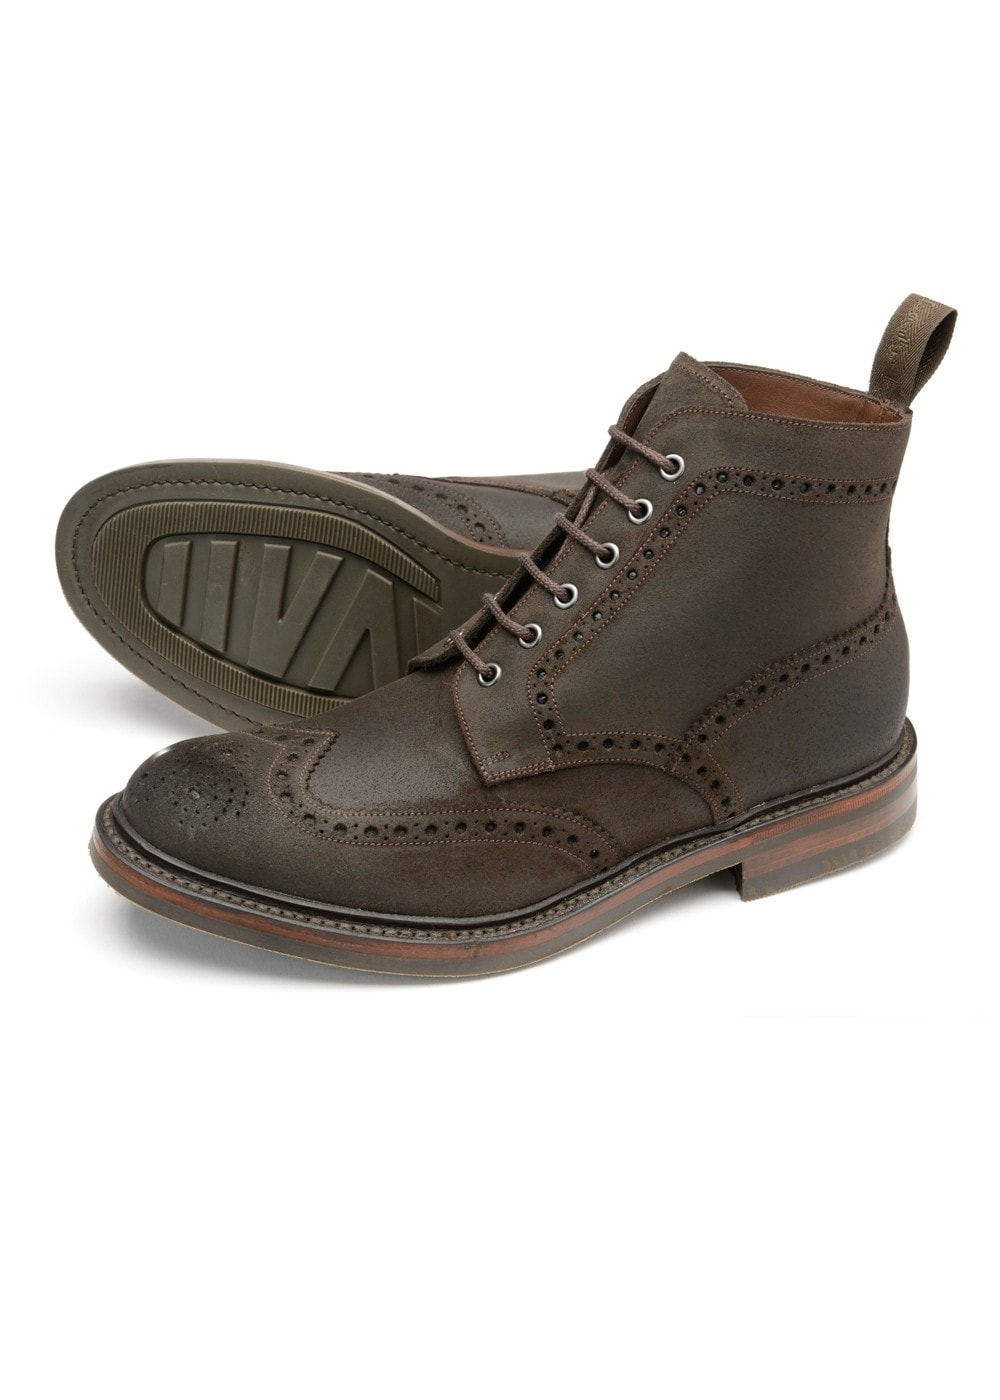 e9636a00e68 Loake Bedale Boots - Mens from A Hume UK